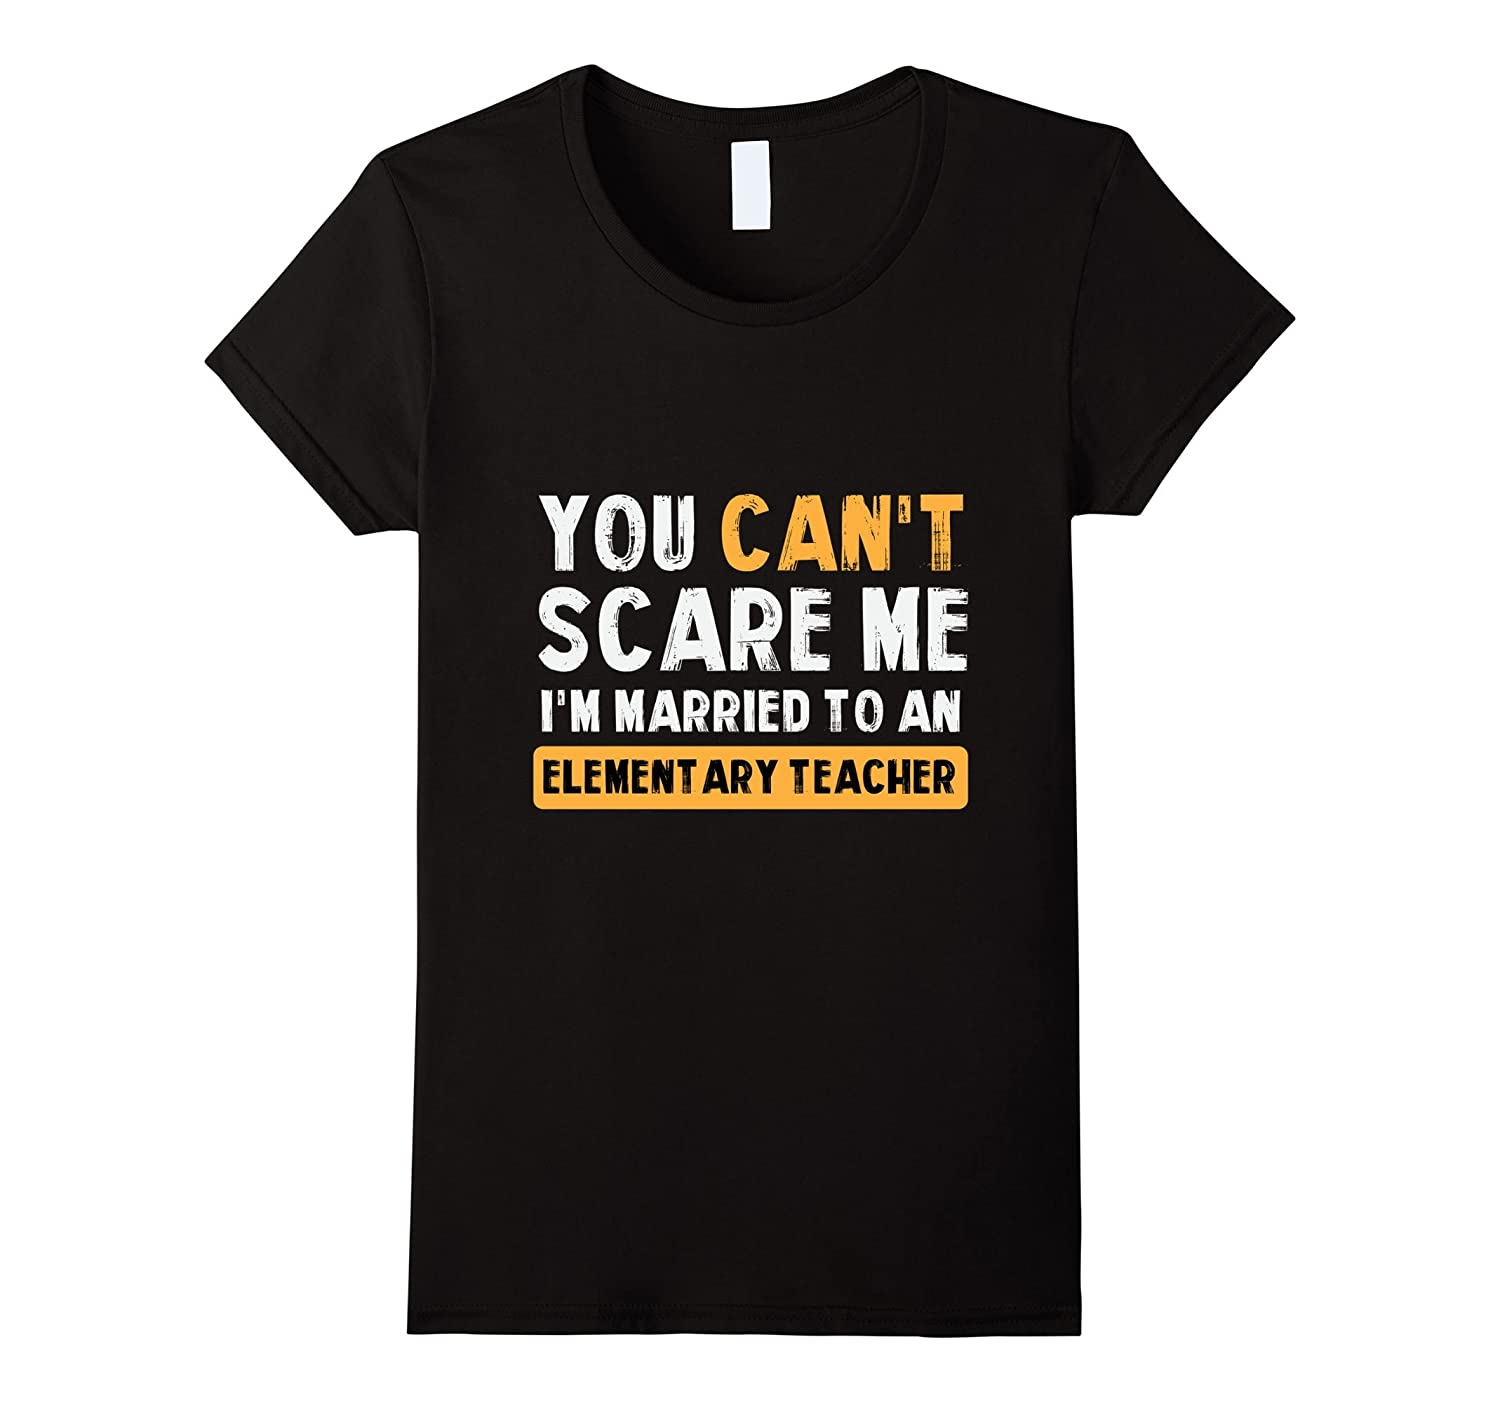 You can't scare me I'm married to an elementary teacher